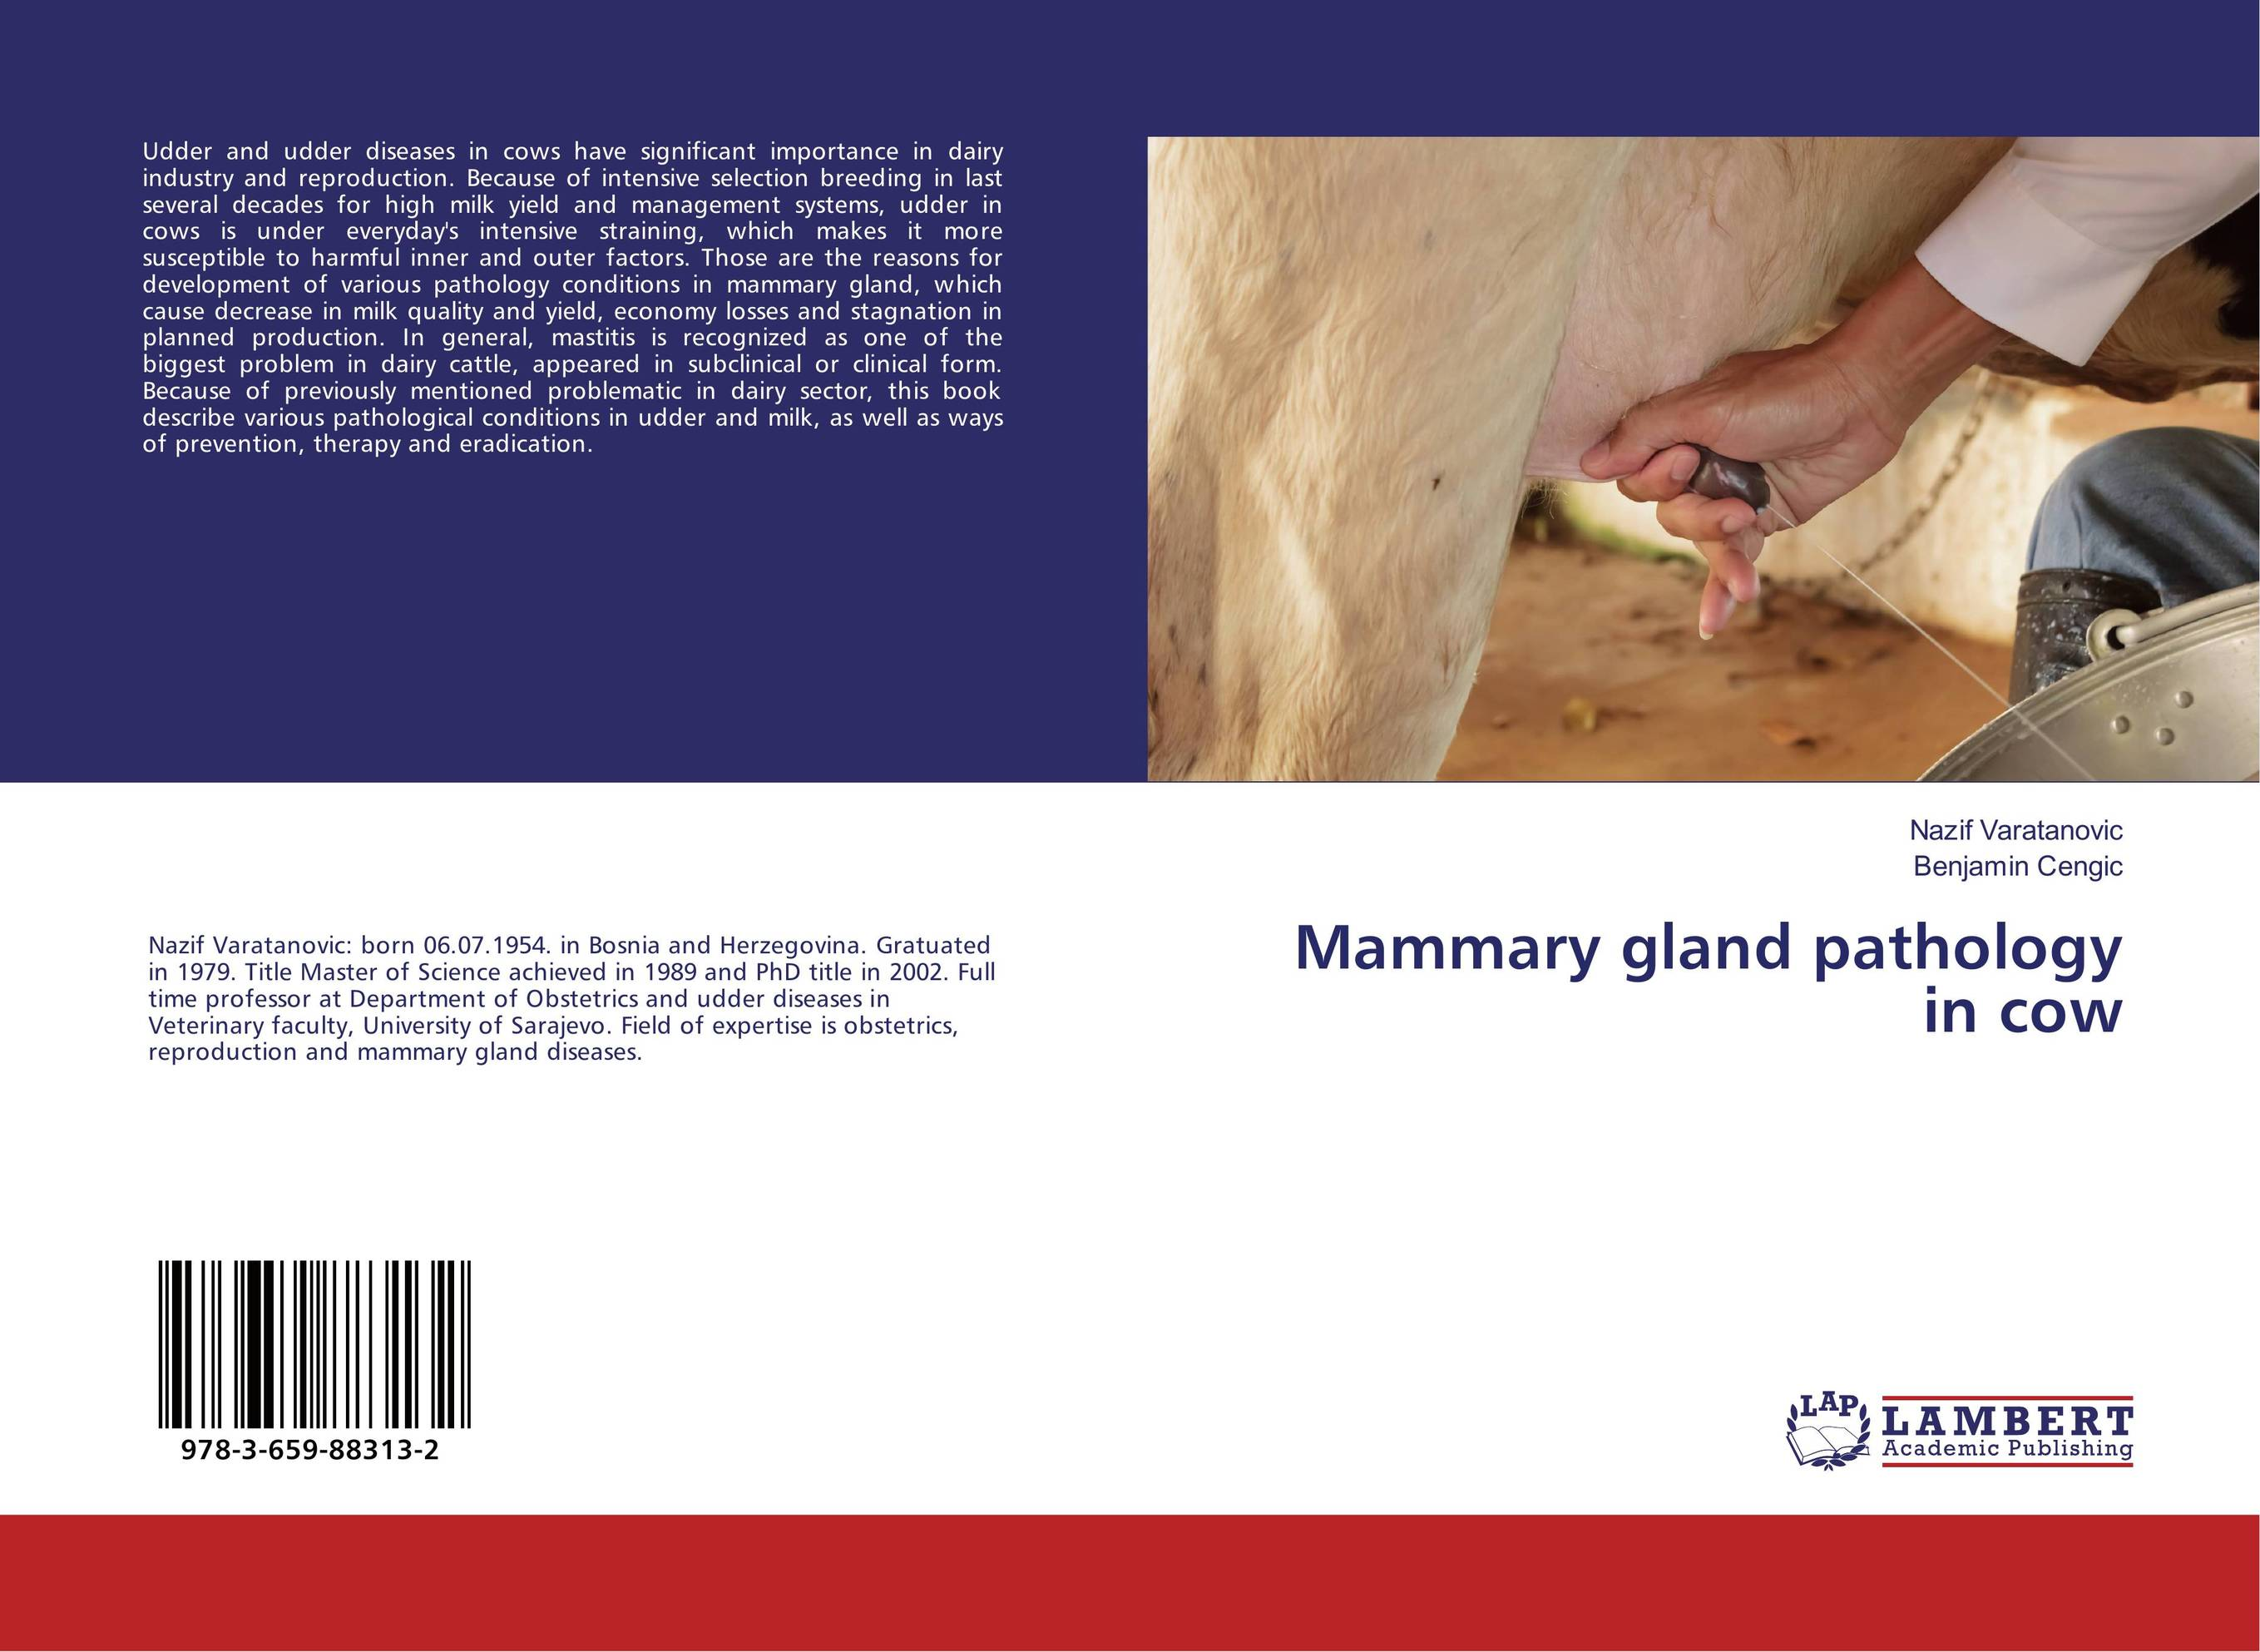 Mammary gland pathology in cow claw disorders in dairy cows under smallholder zero grazing units